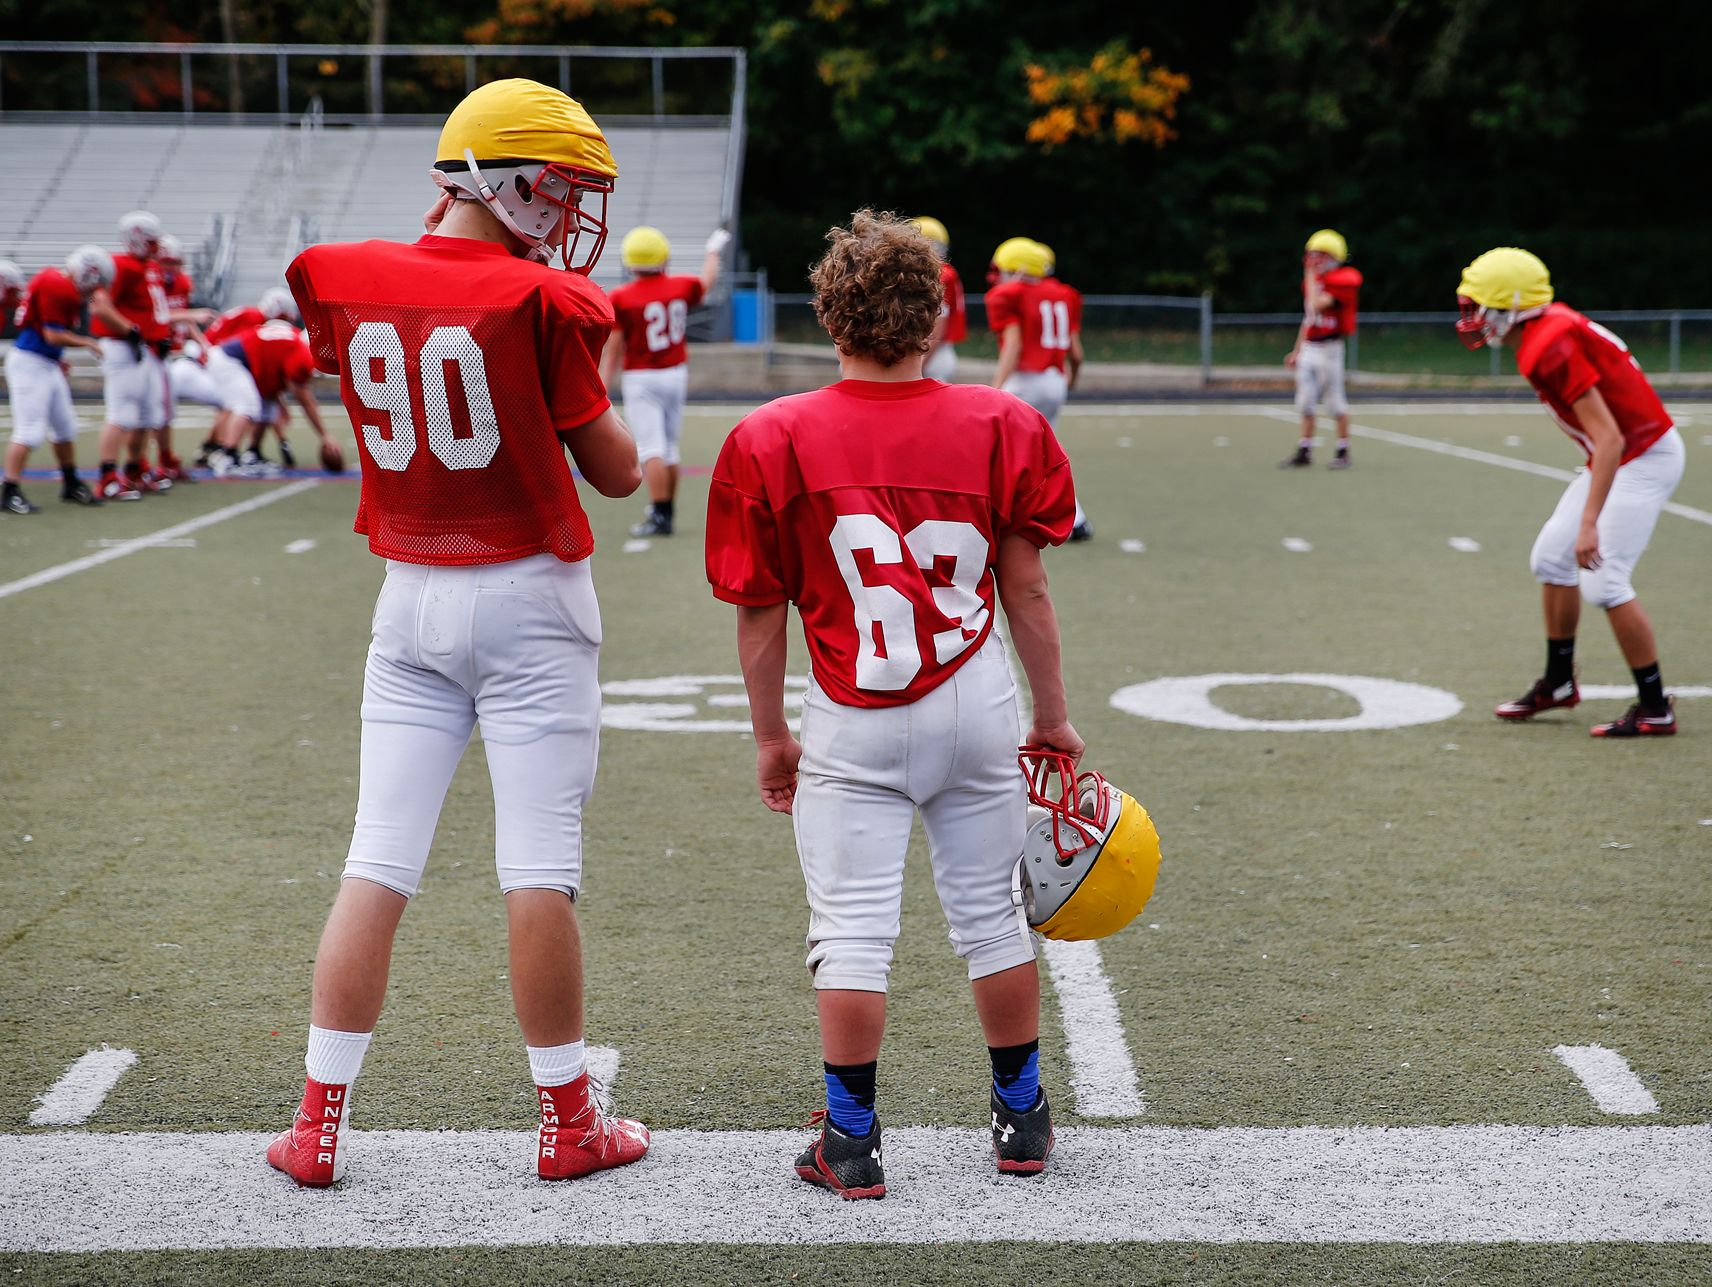 Roncalli Rebels nose tackle Max Quebe, a 5-foot-2-inch, 135-pound Russian adoptee, talks with sophomore Will King (90) on the sidelines during practice on Oct. 19, 2016.